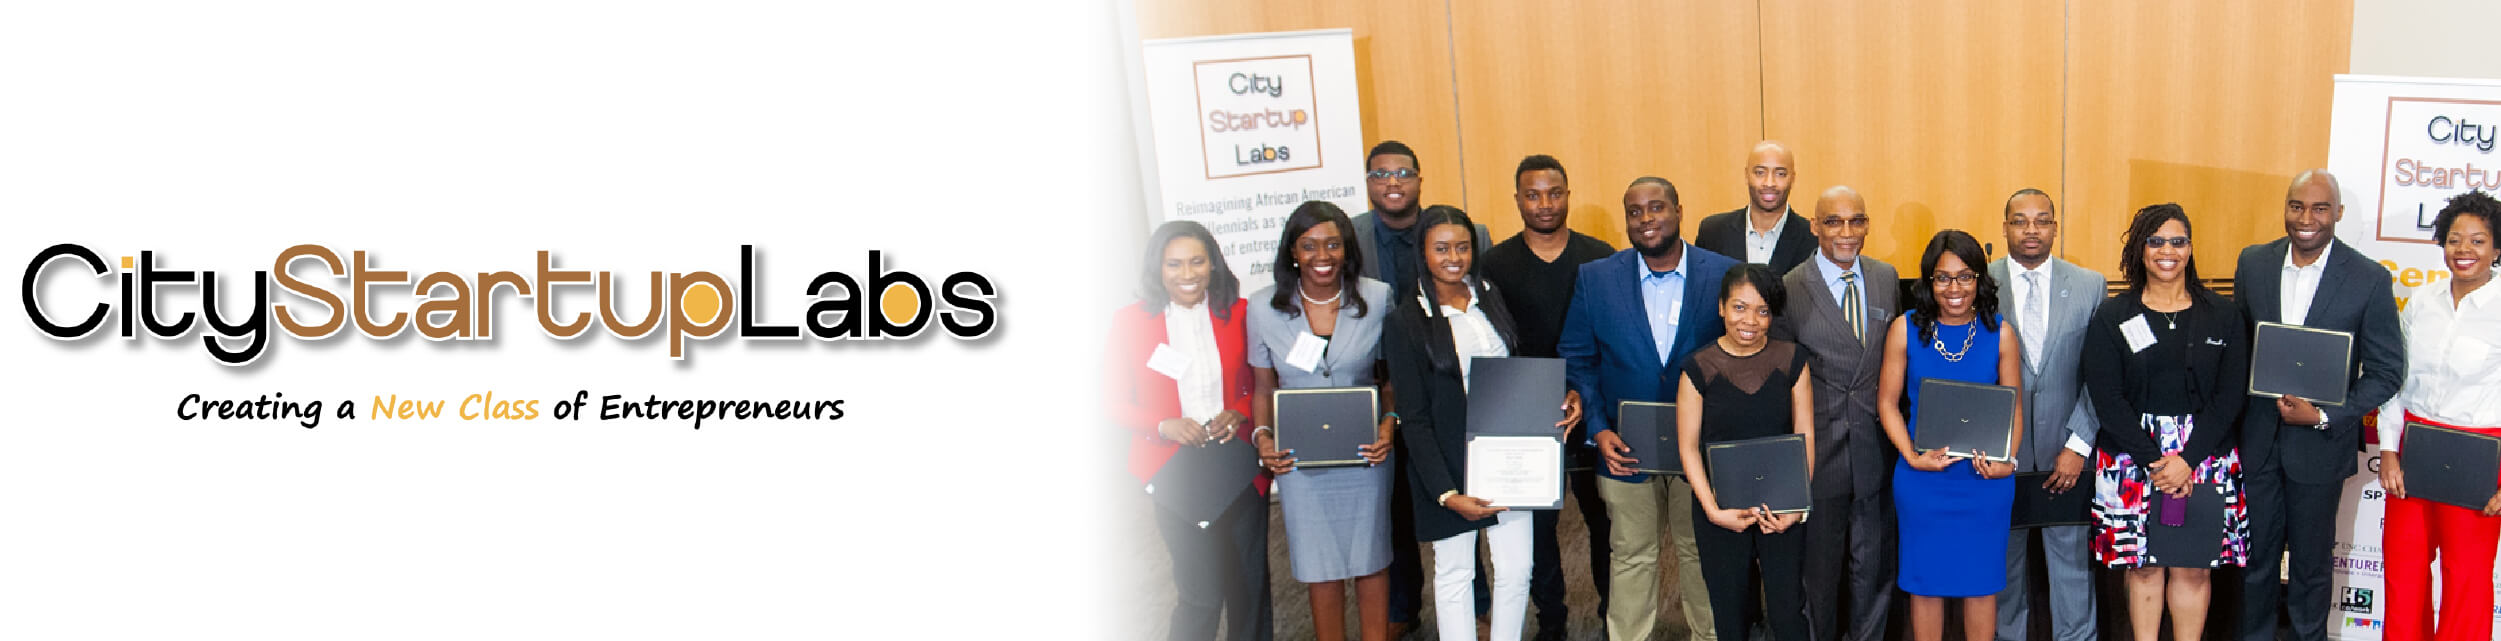 City Startup Labs with African American professionals posing for group photo